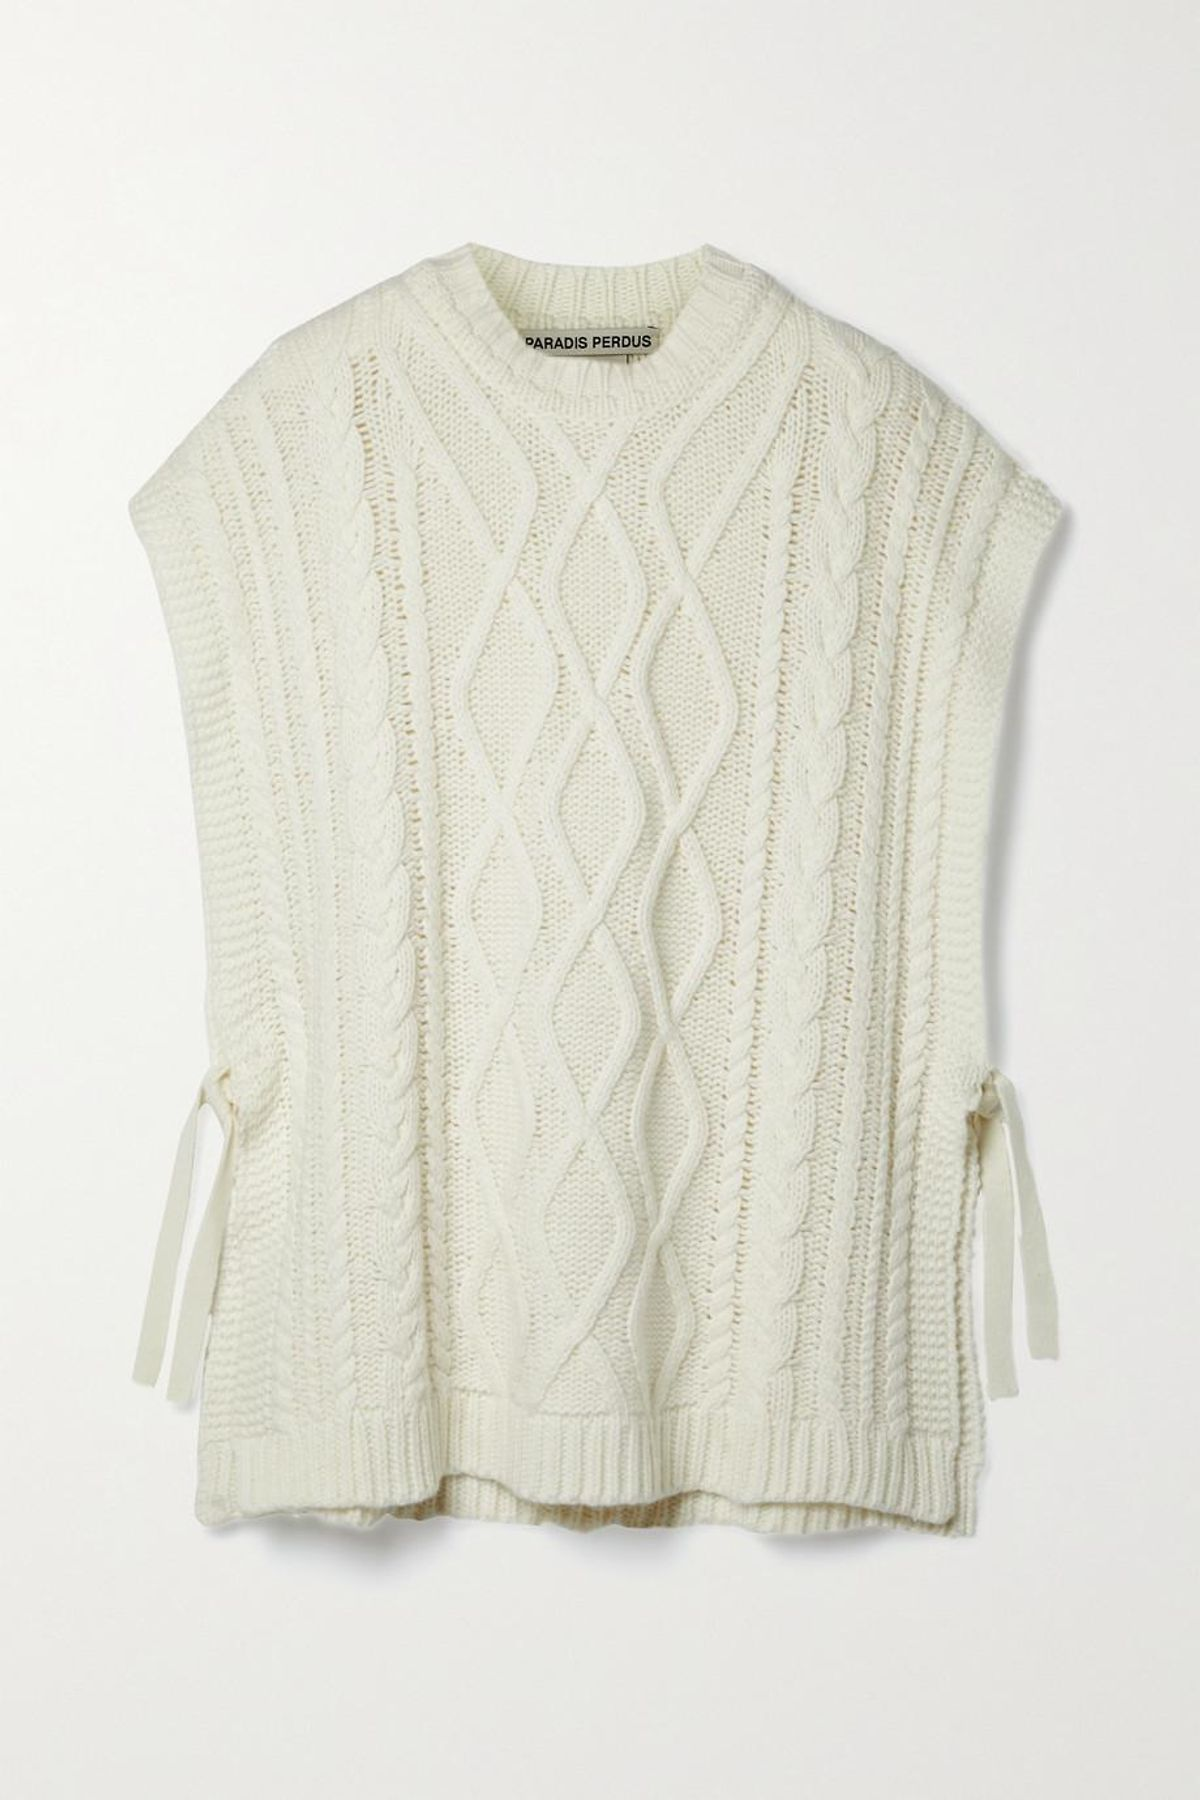 paradis perdus and net sustain vasco cable knit recycled merino wool blend poncho